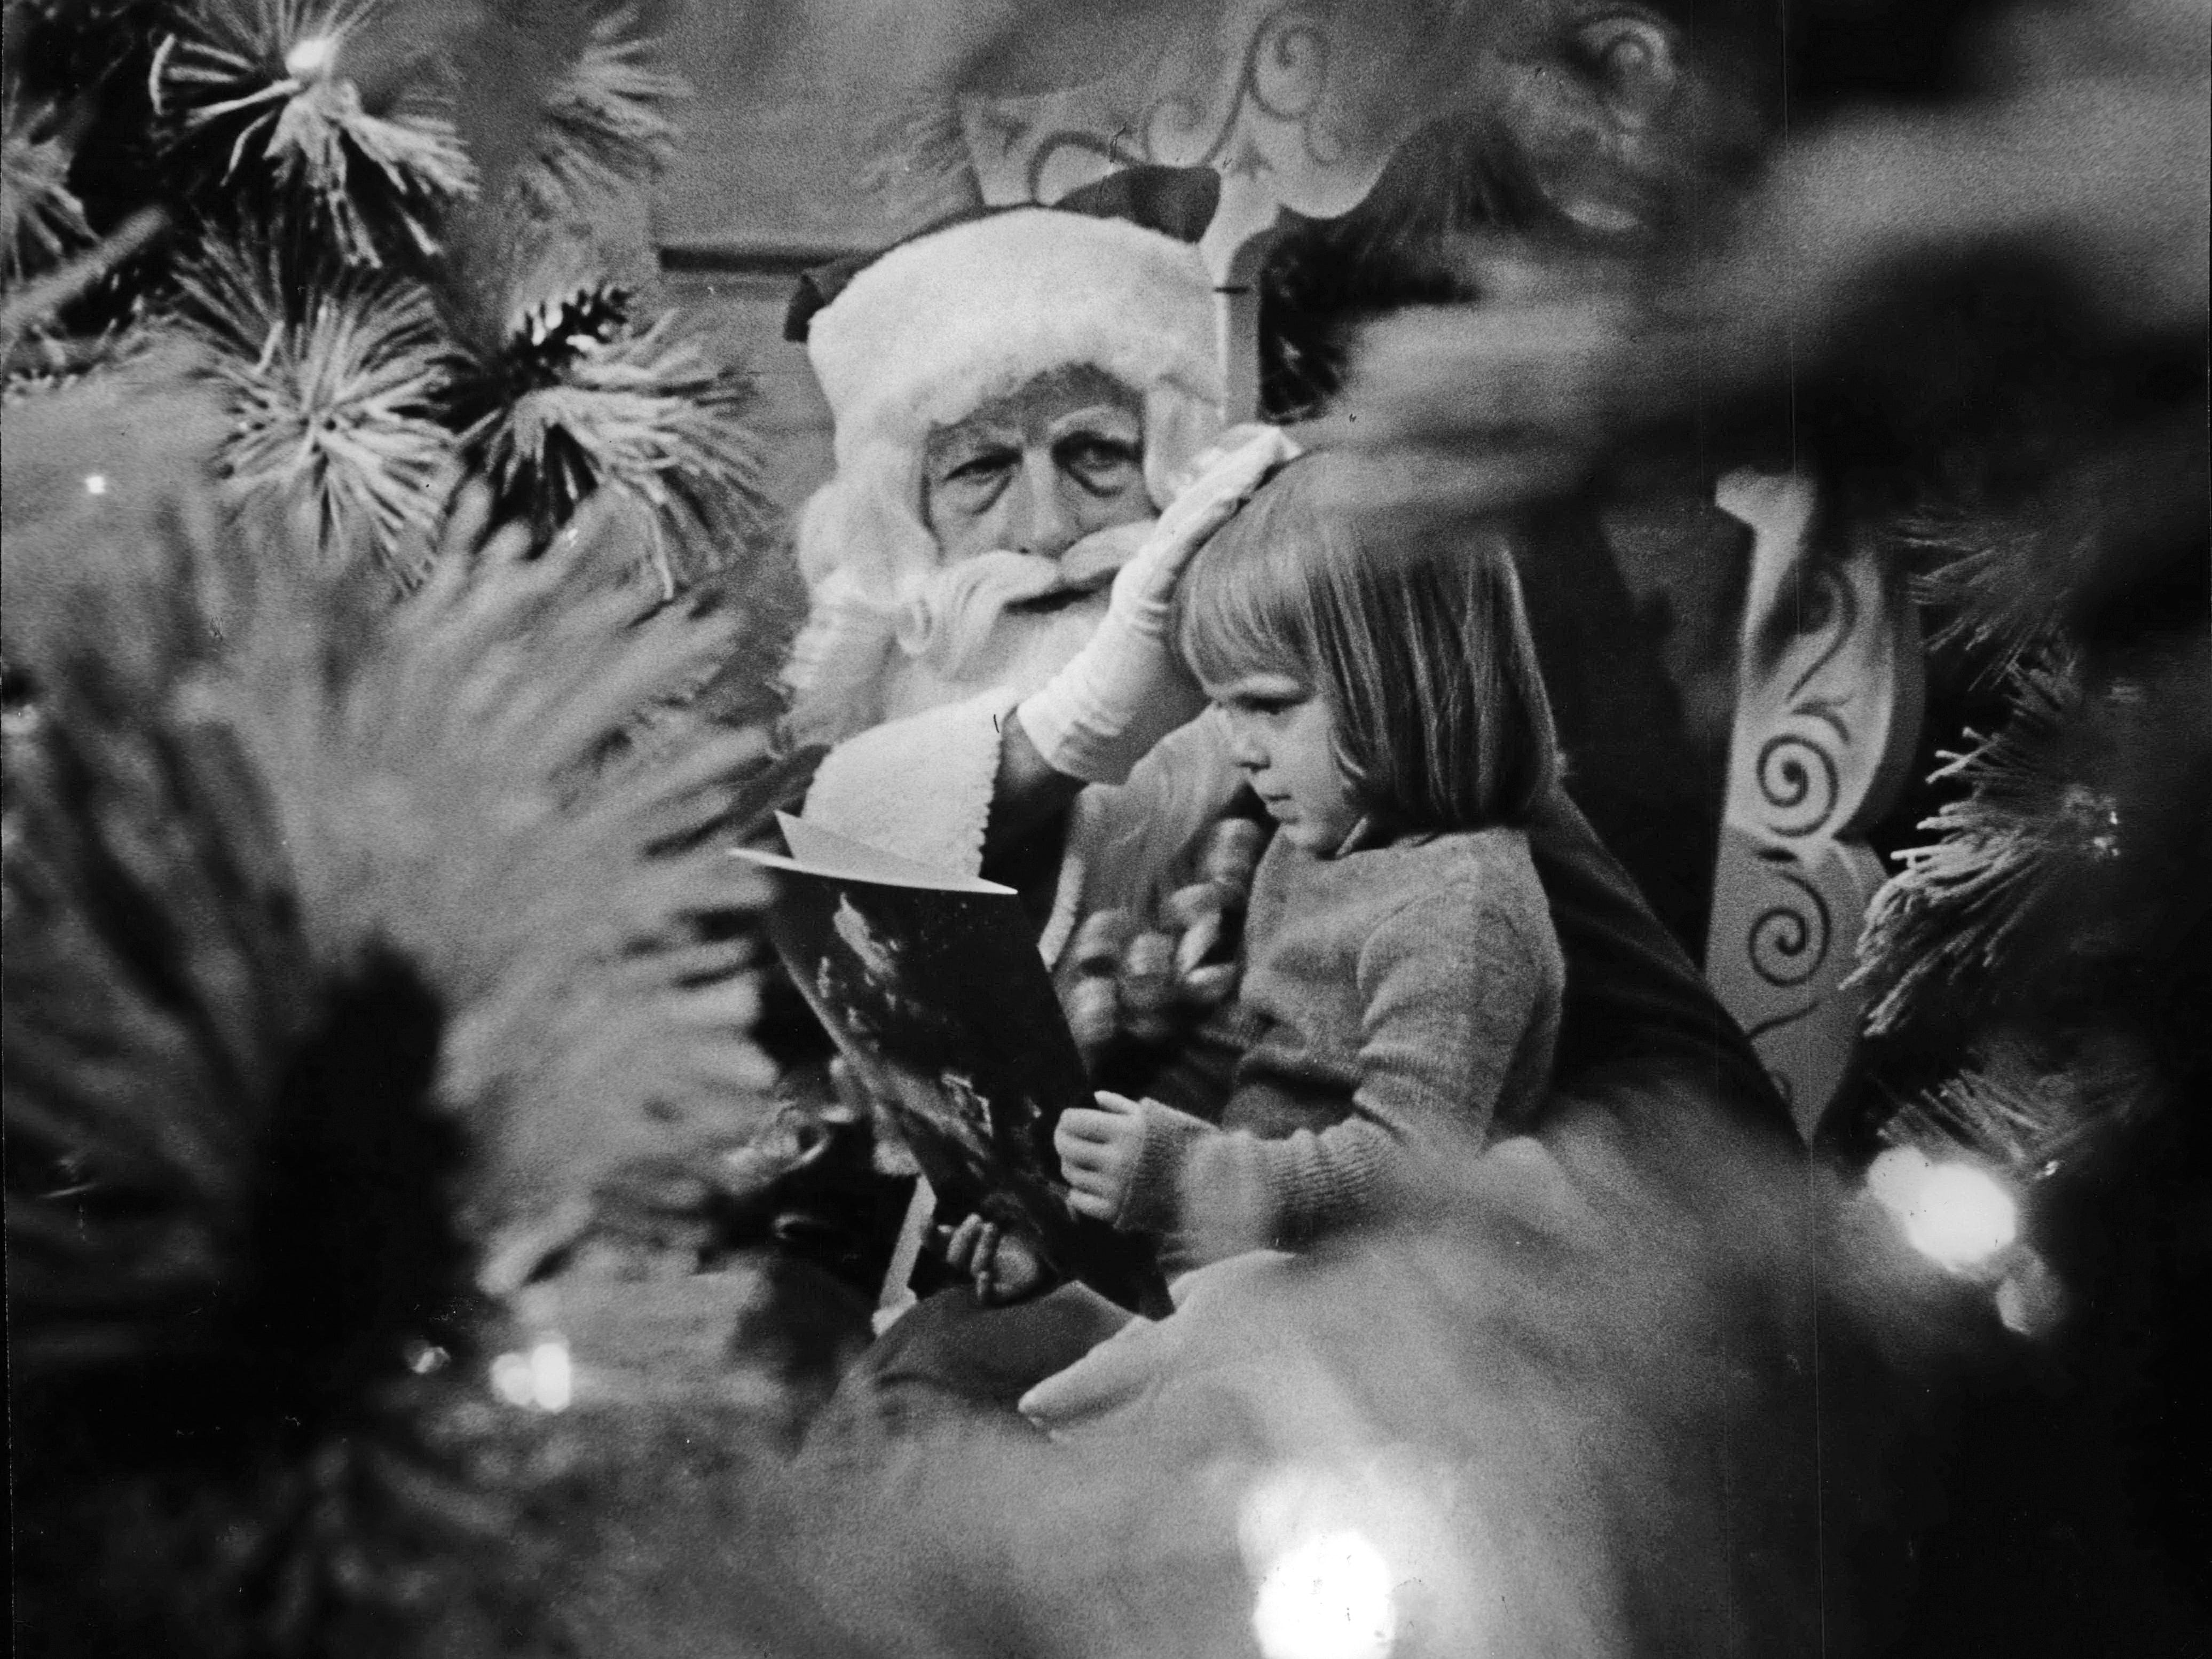 December, 1981: A little girl seemed more interested in her Christmas book than in Santa during a visit with Mr. Claus at Northridge Shopping Center.